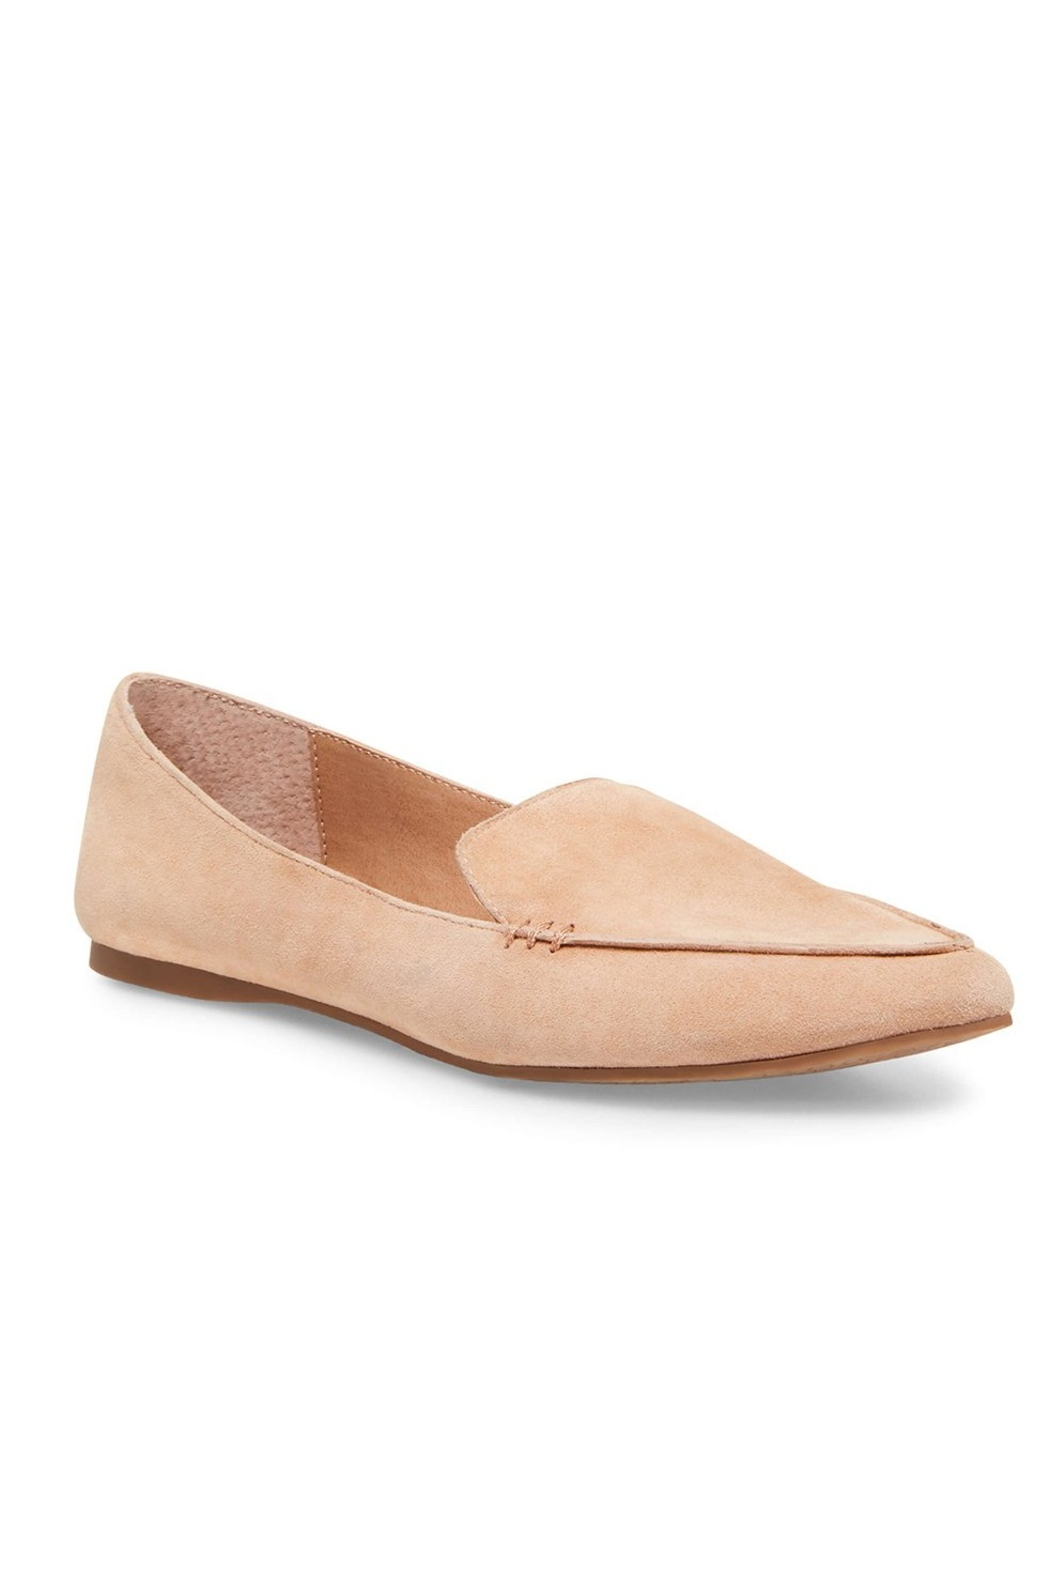 Steve Madden Feather Pointed Flat - Main Image